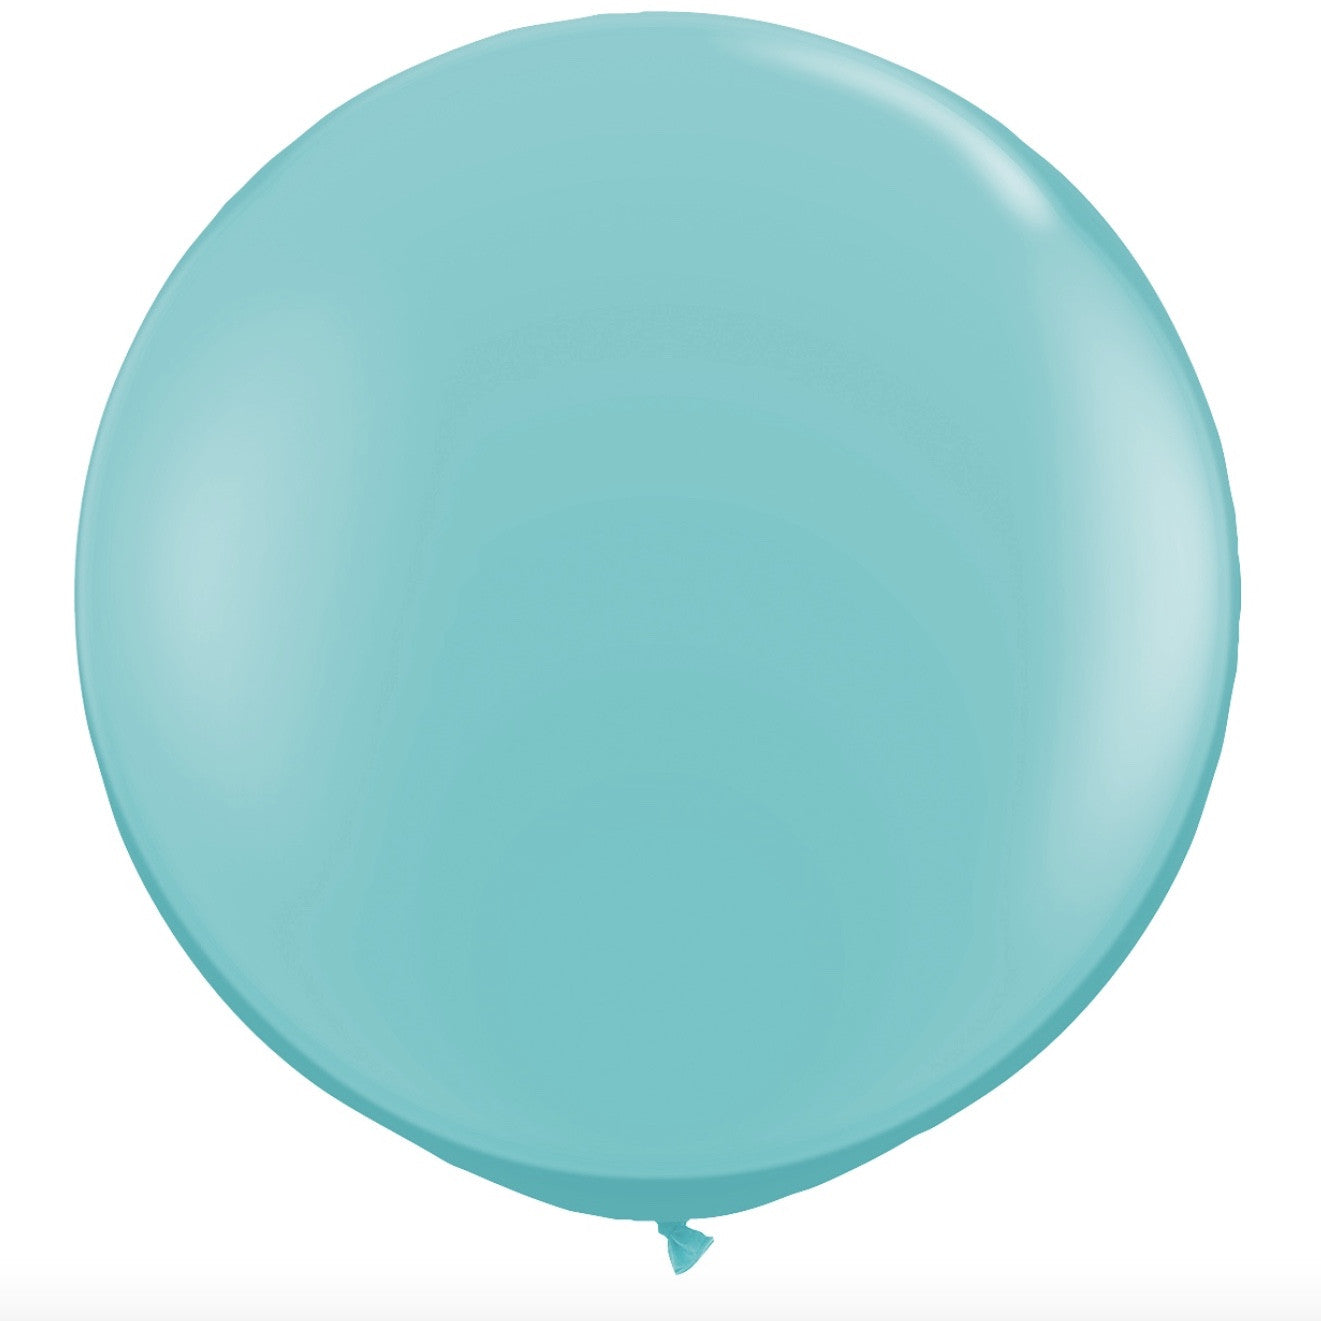 "Giant Round Balloon 36""- Carribbean Blue, SE-Surprize Enterprize, Putti Fine Furnishings"